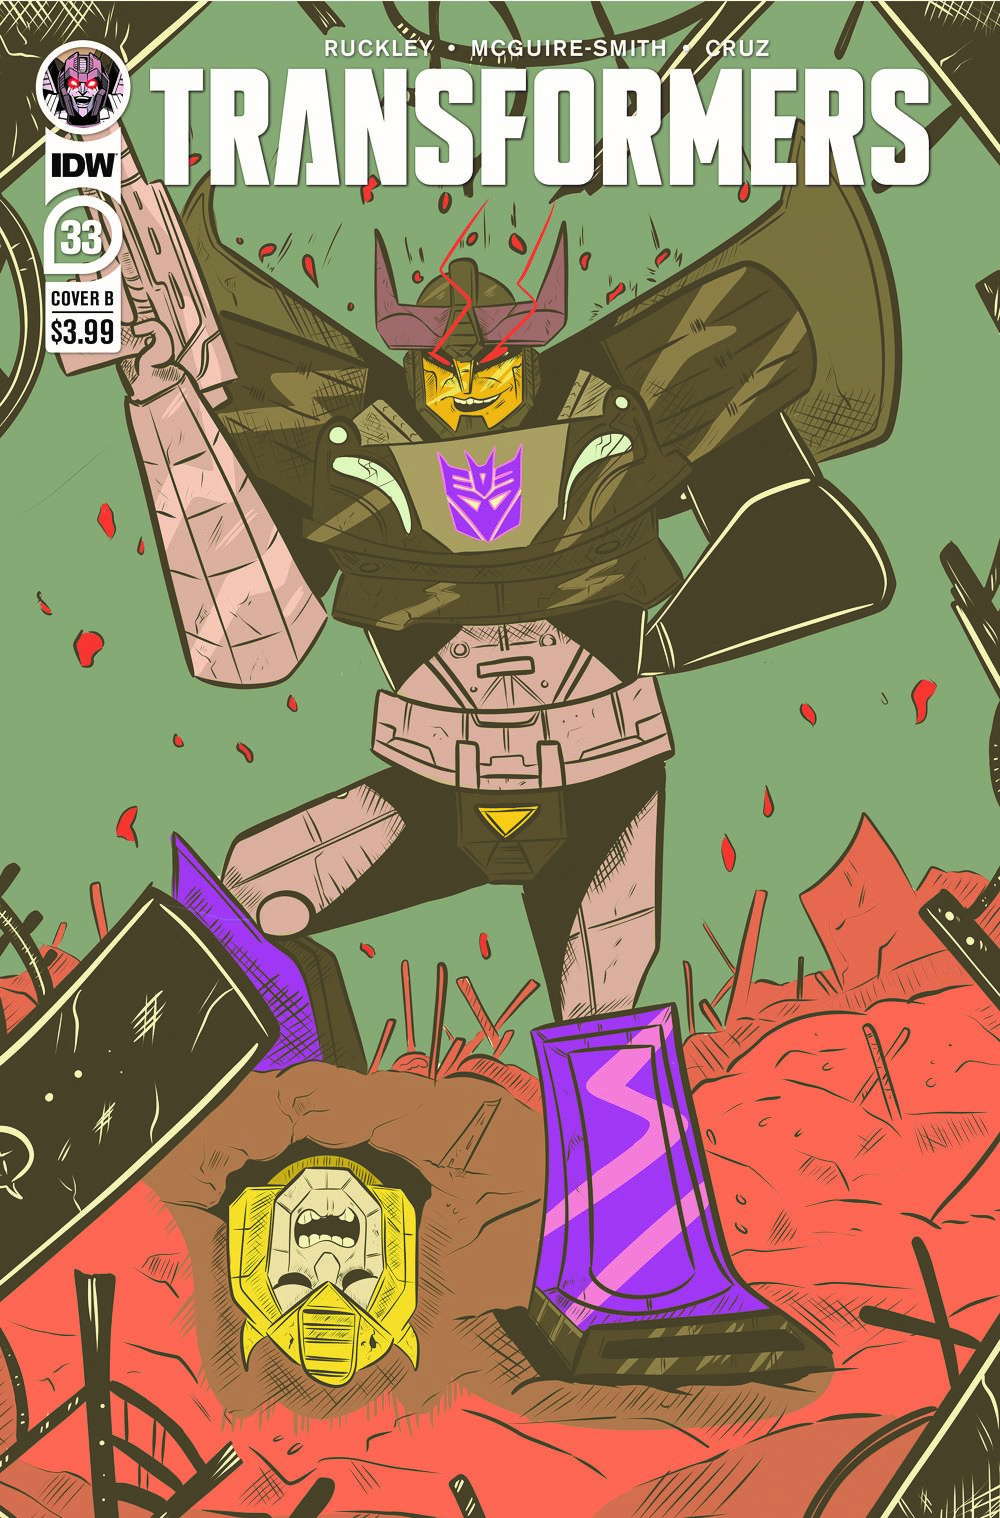 TF33-cvr-B ComicList: IDW Publishing New Releases for 08/04/2021